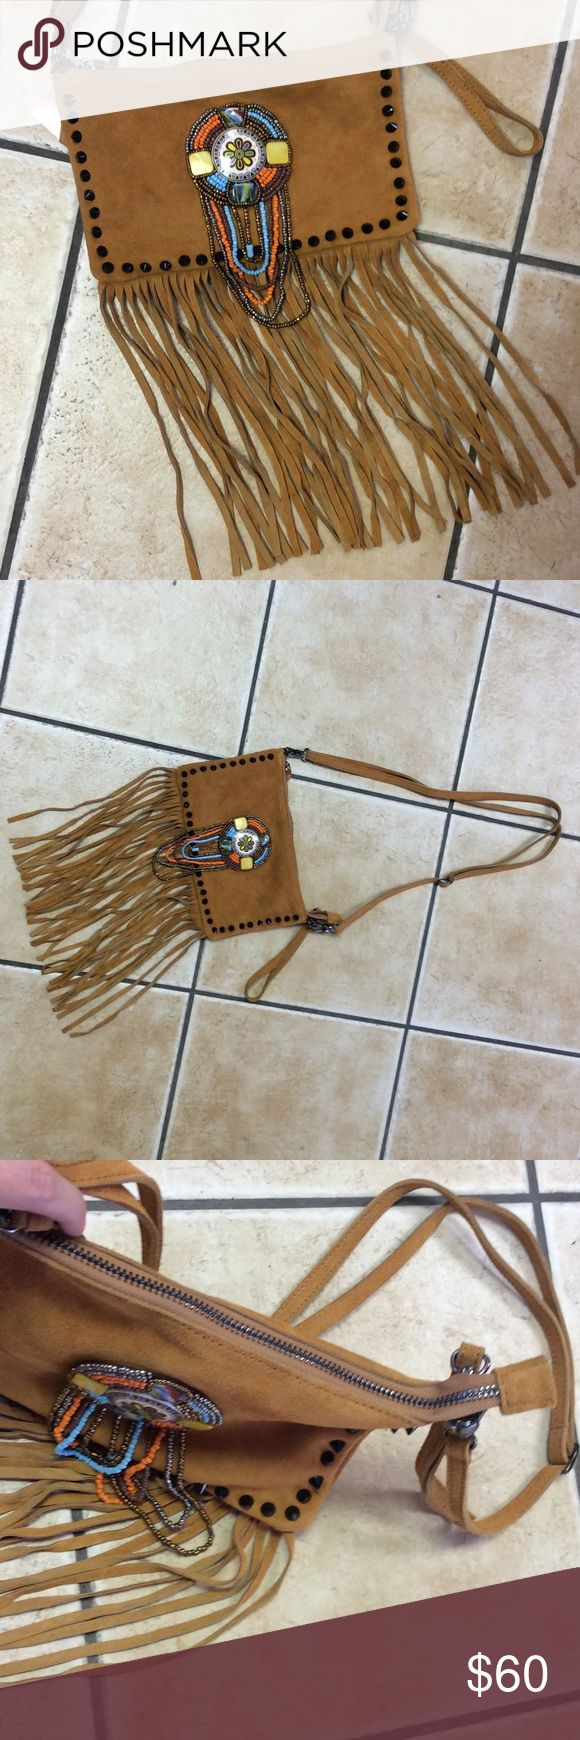 Leather Beaded Purse Beautiful leather, studs, beaded bag. Perfect size. Detachable long adjustable strap. Also has a wristlet strap. New with tags. Perfect for festivals. Free people like, but not free people brand! No  Bags Shoulder Bags